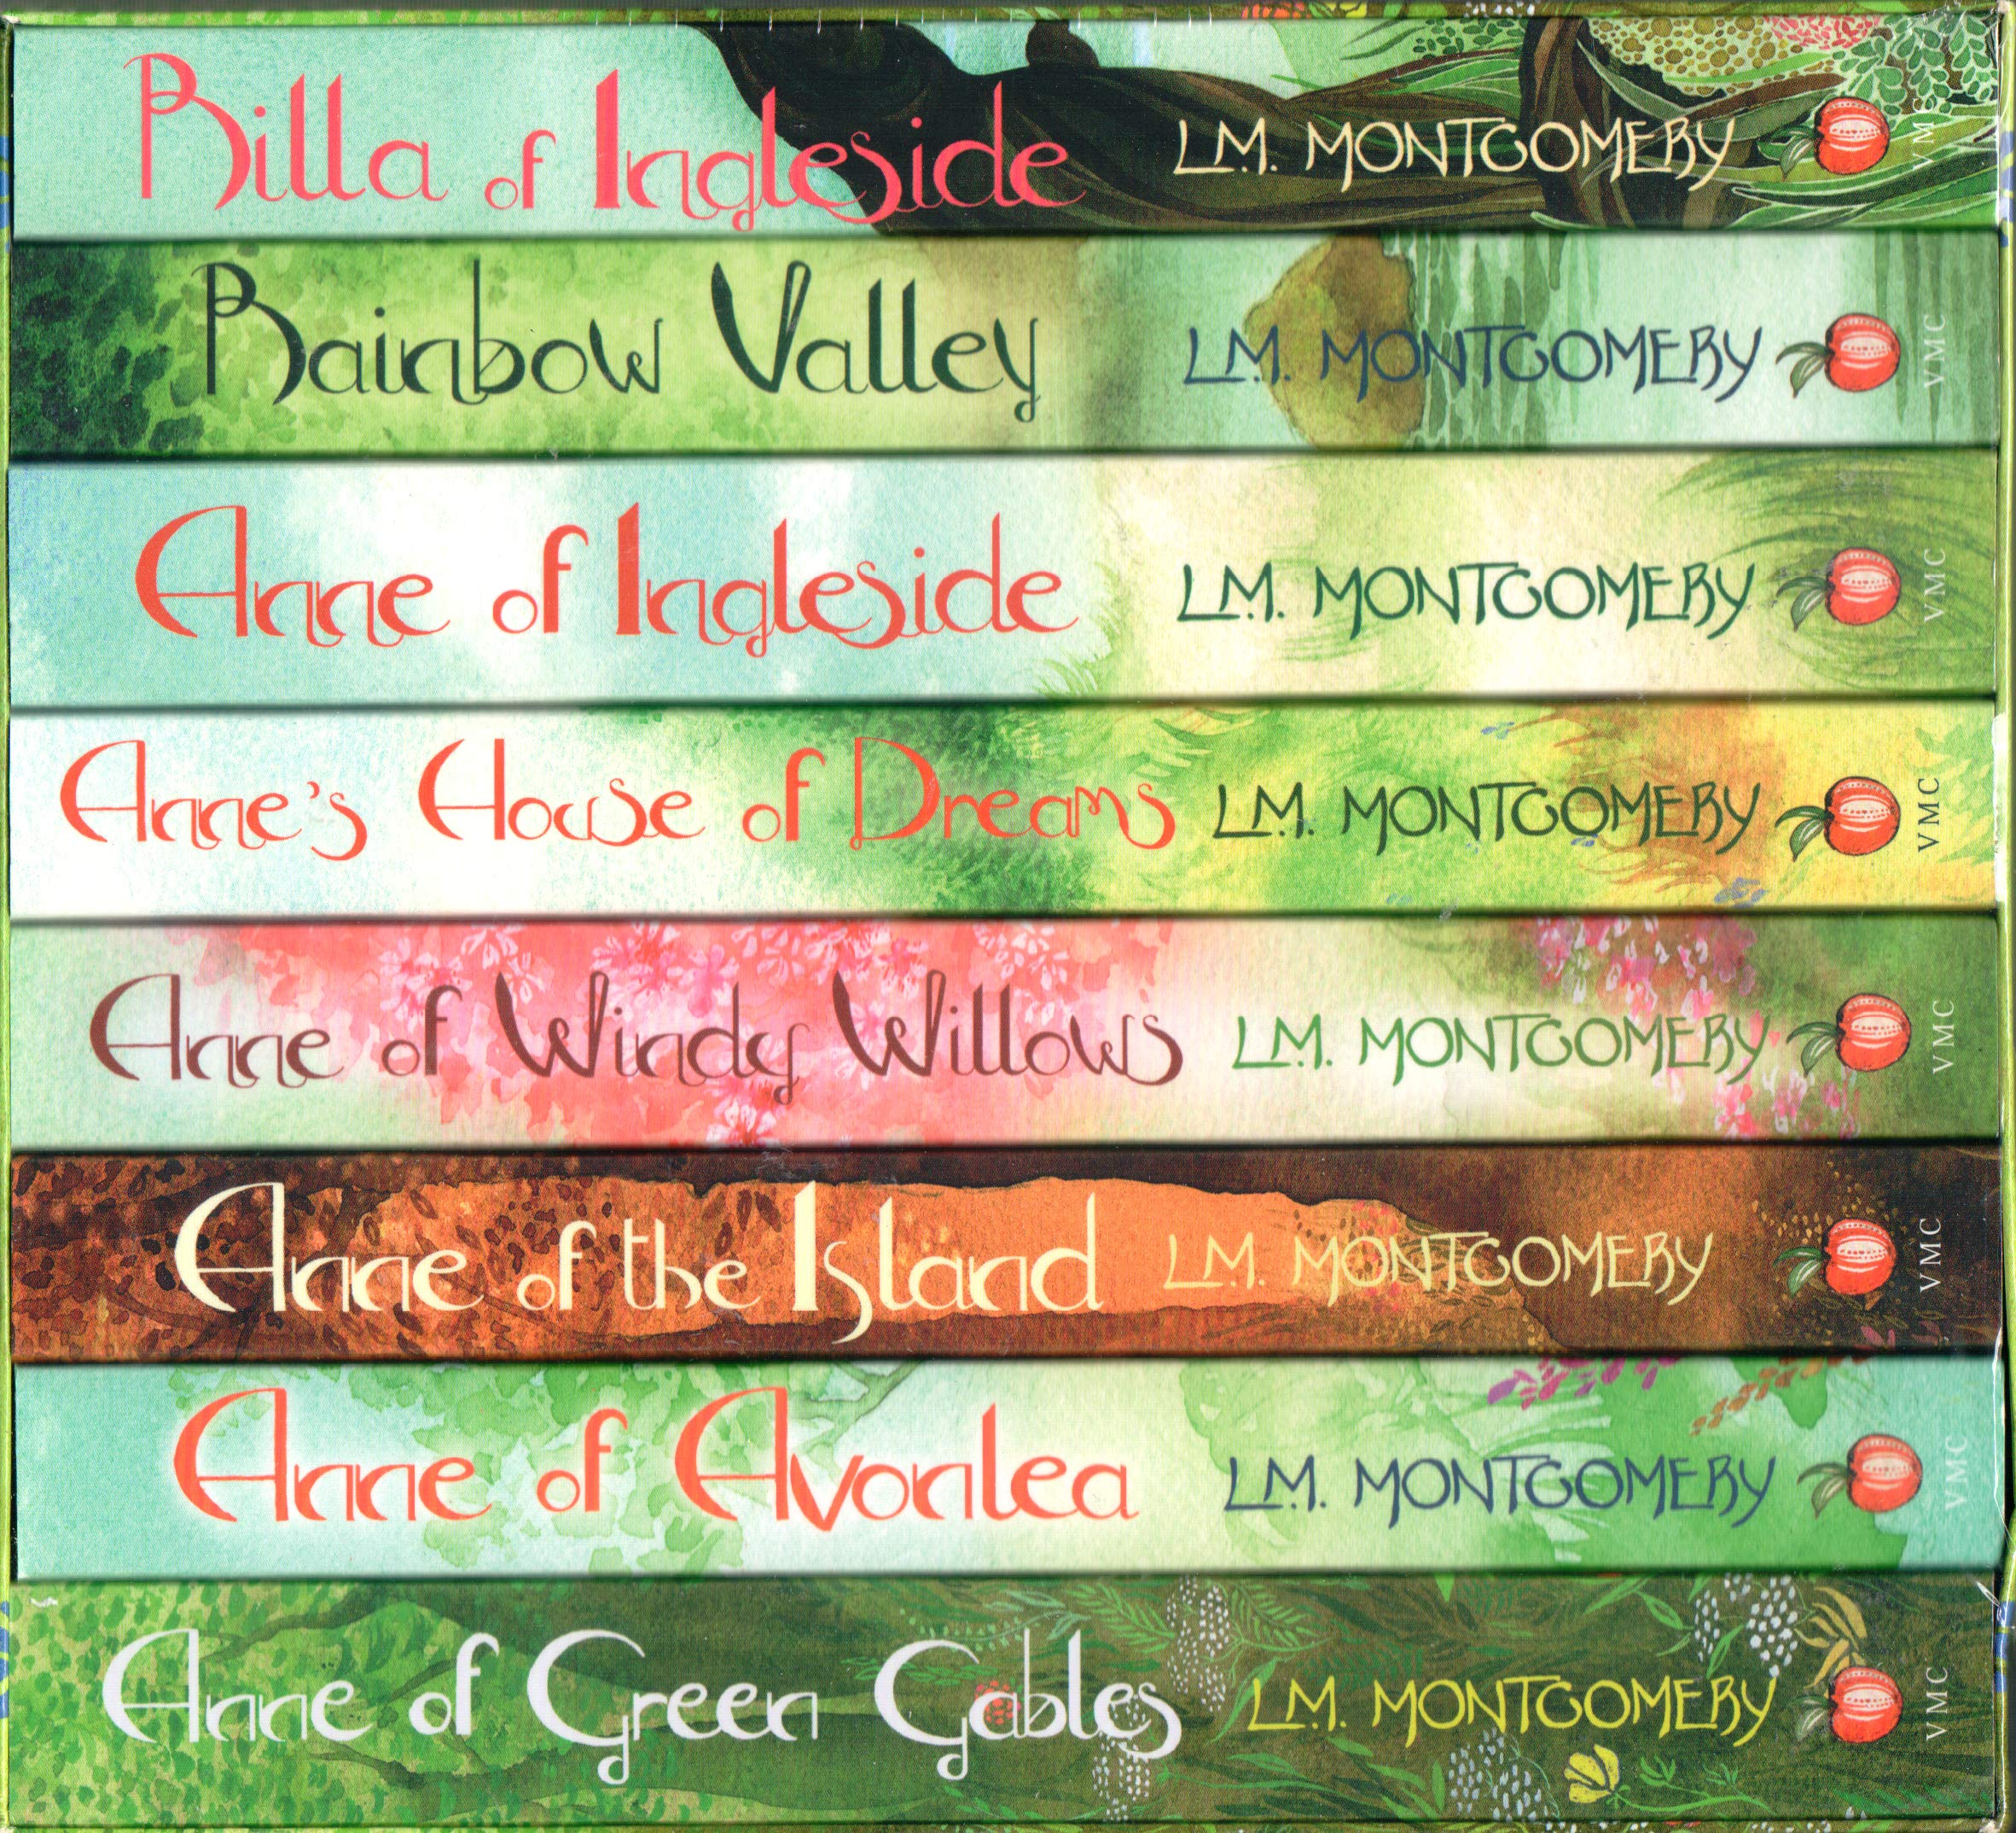 Box set: The Complete Anne of Green Gables Collection, by L. M. Montgomery (Virago edition)